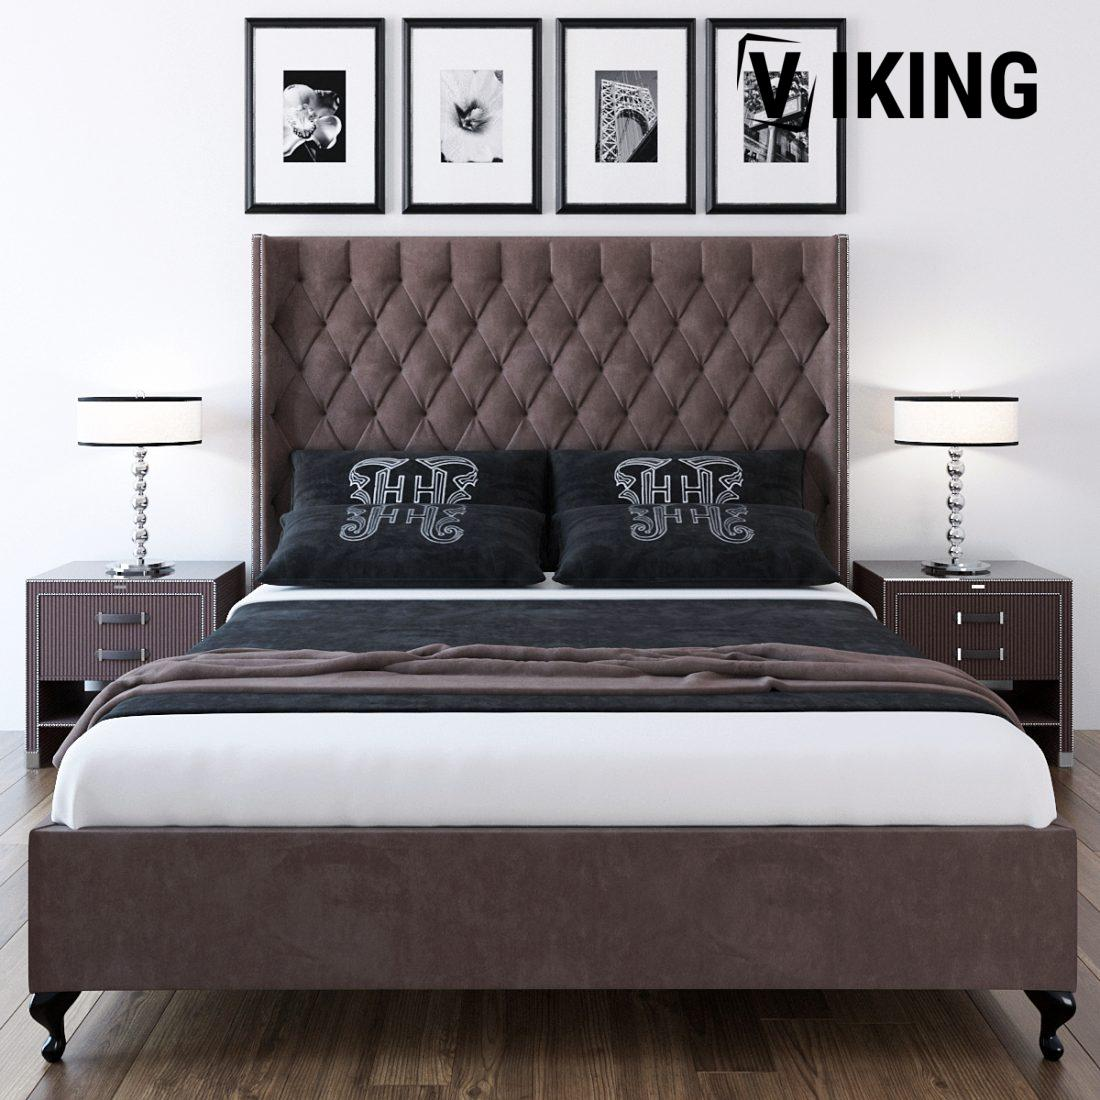 3D Gianfranco Ferre Home Bed Model 156 Free Download 2 scaled 1